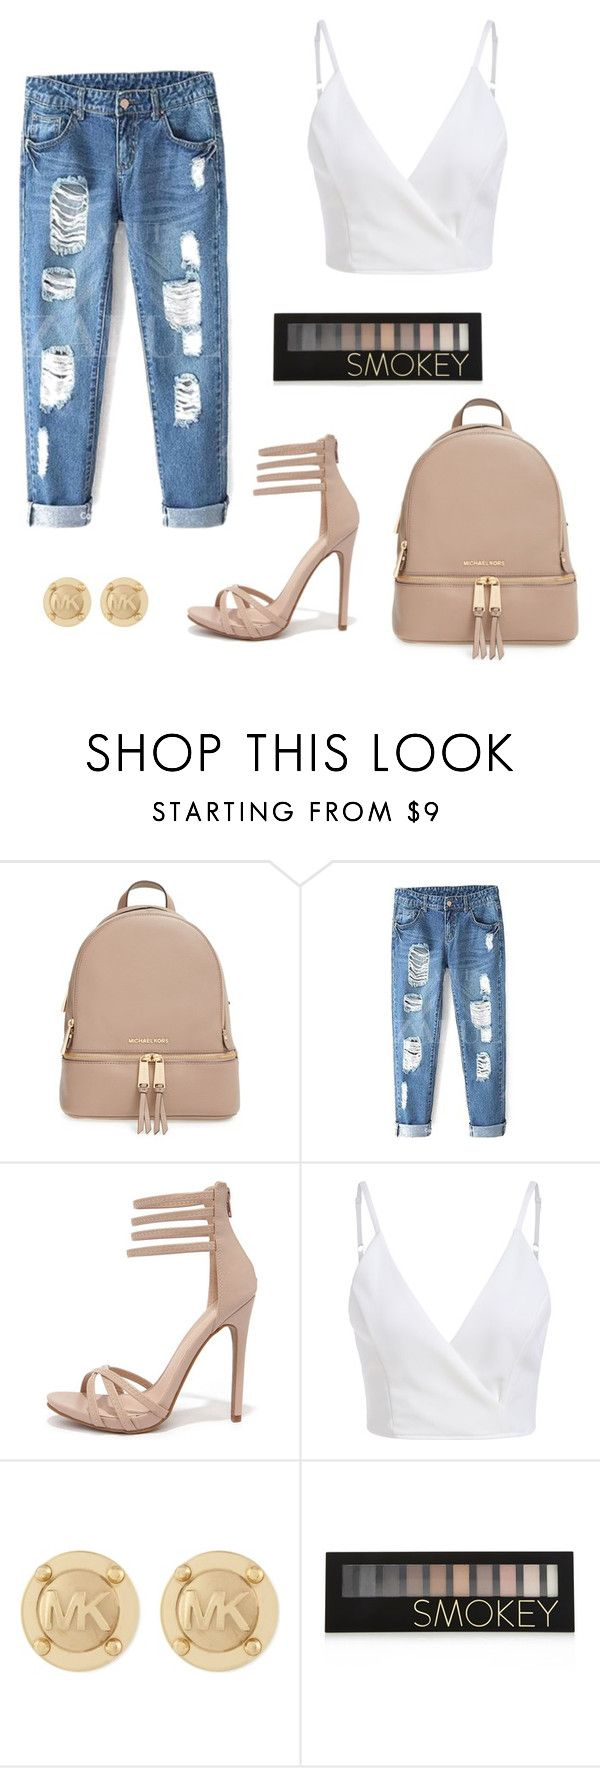 """""""Micheal Kors"""" by ruby-garthune ❤ liked on Polyvore featuring мода, MICHAEL Michael Kors, Shoe Republic LA, Michael Kors и Forever 21"""